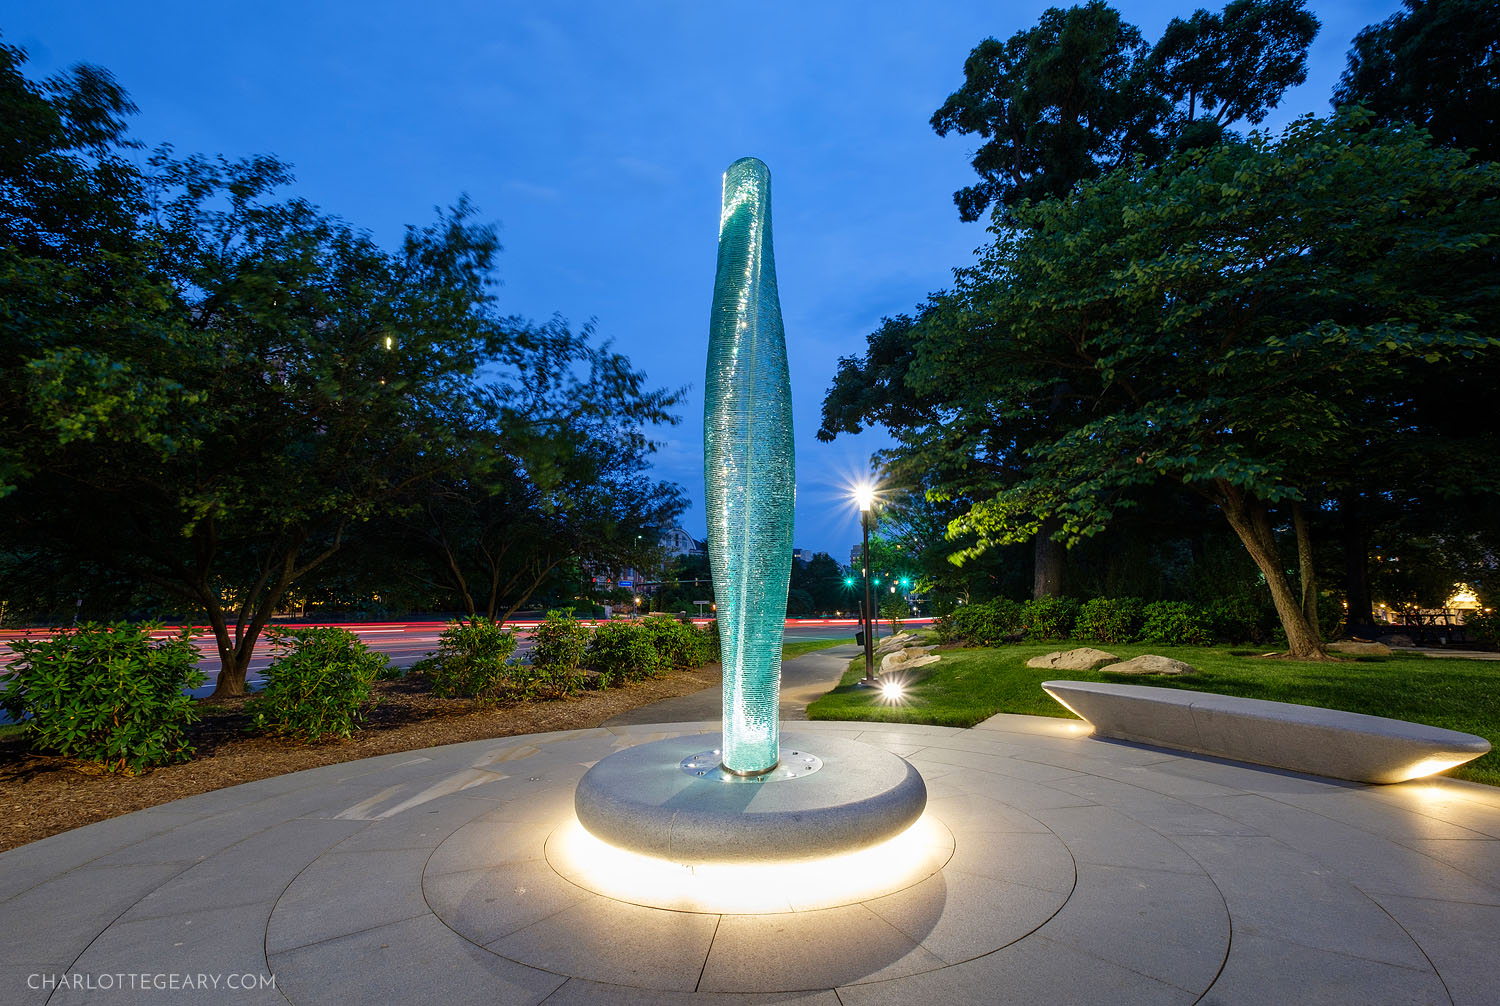 Danny Lane glass sculpture at Reston Town Center